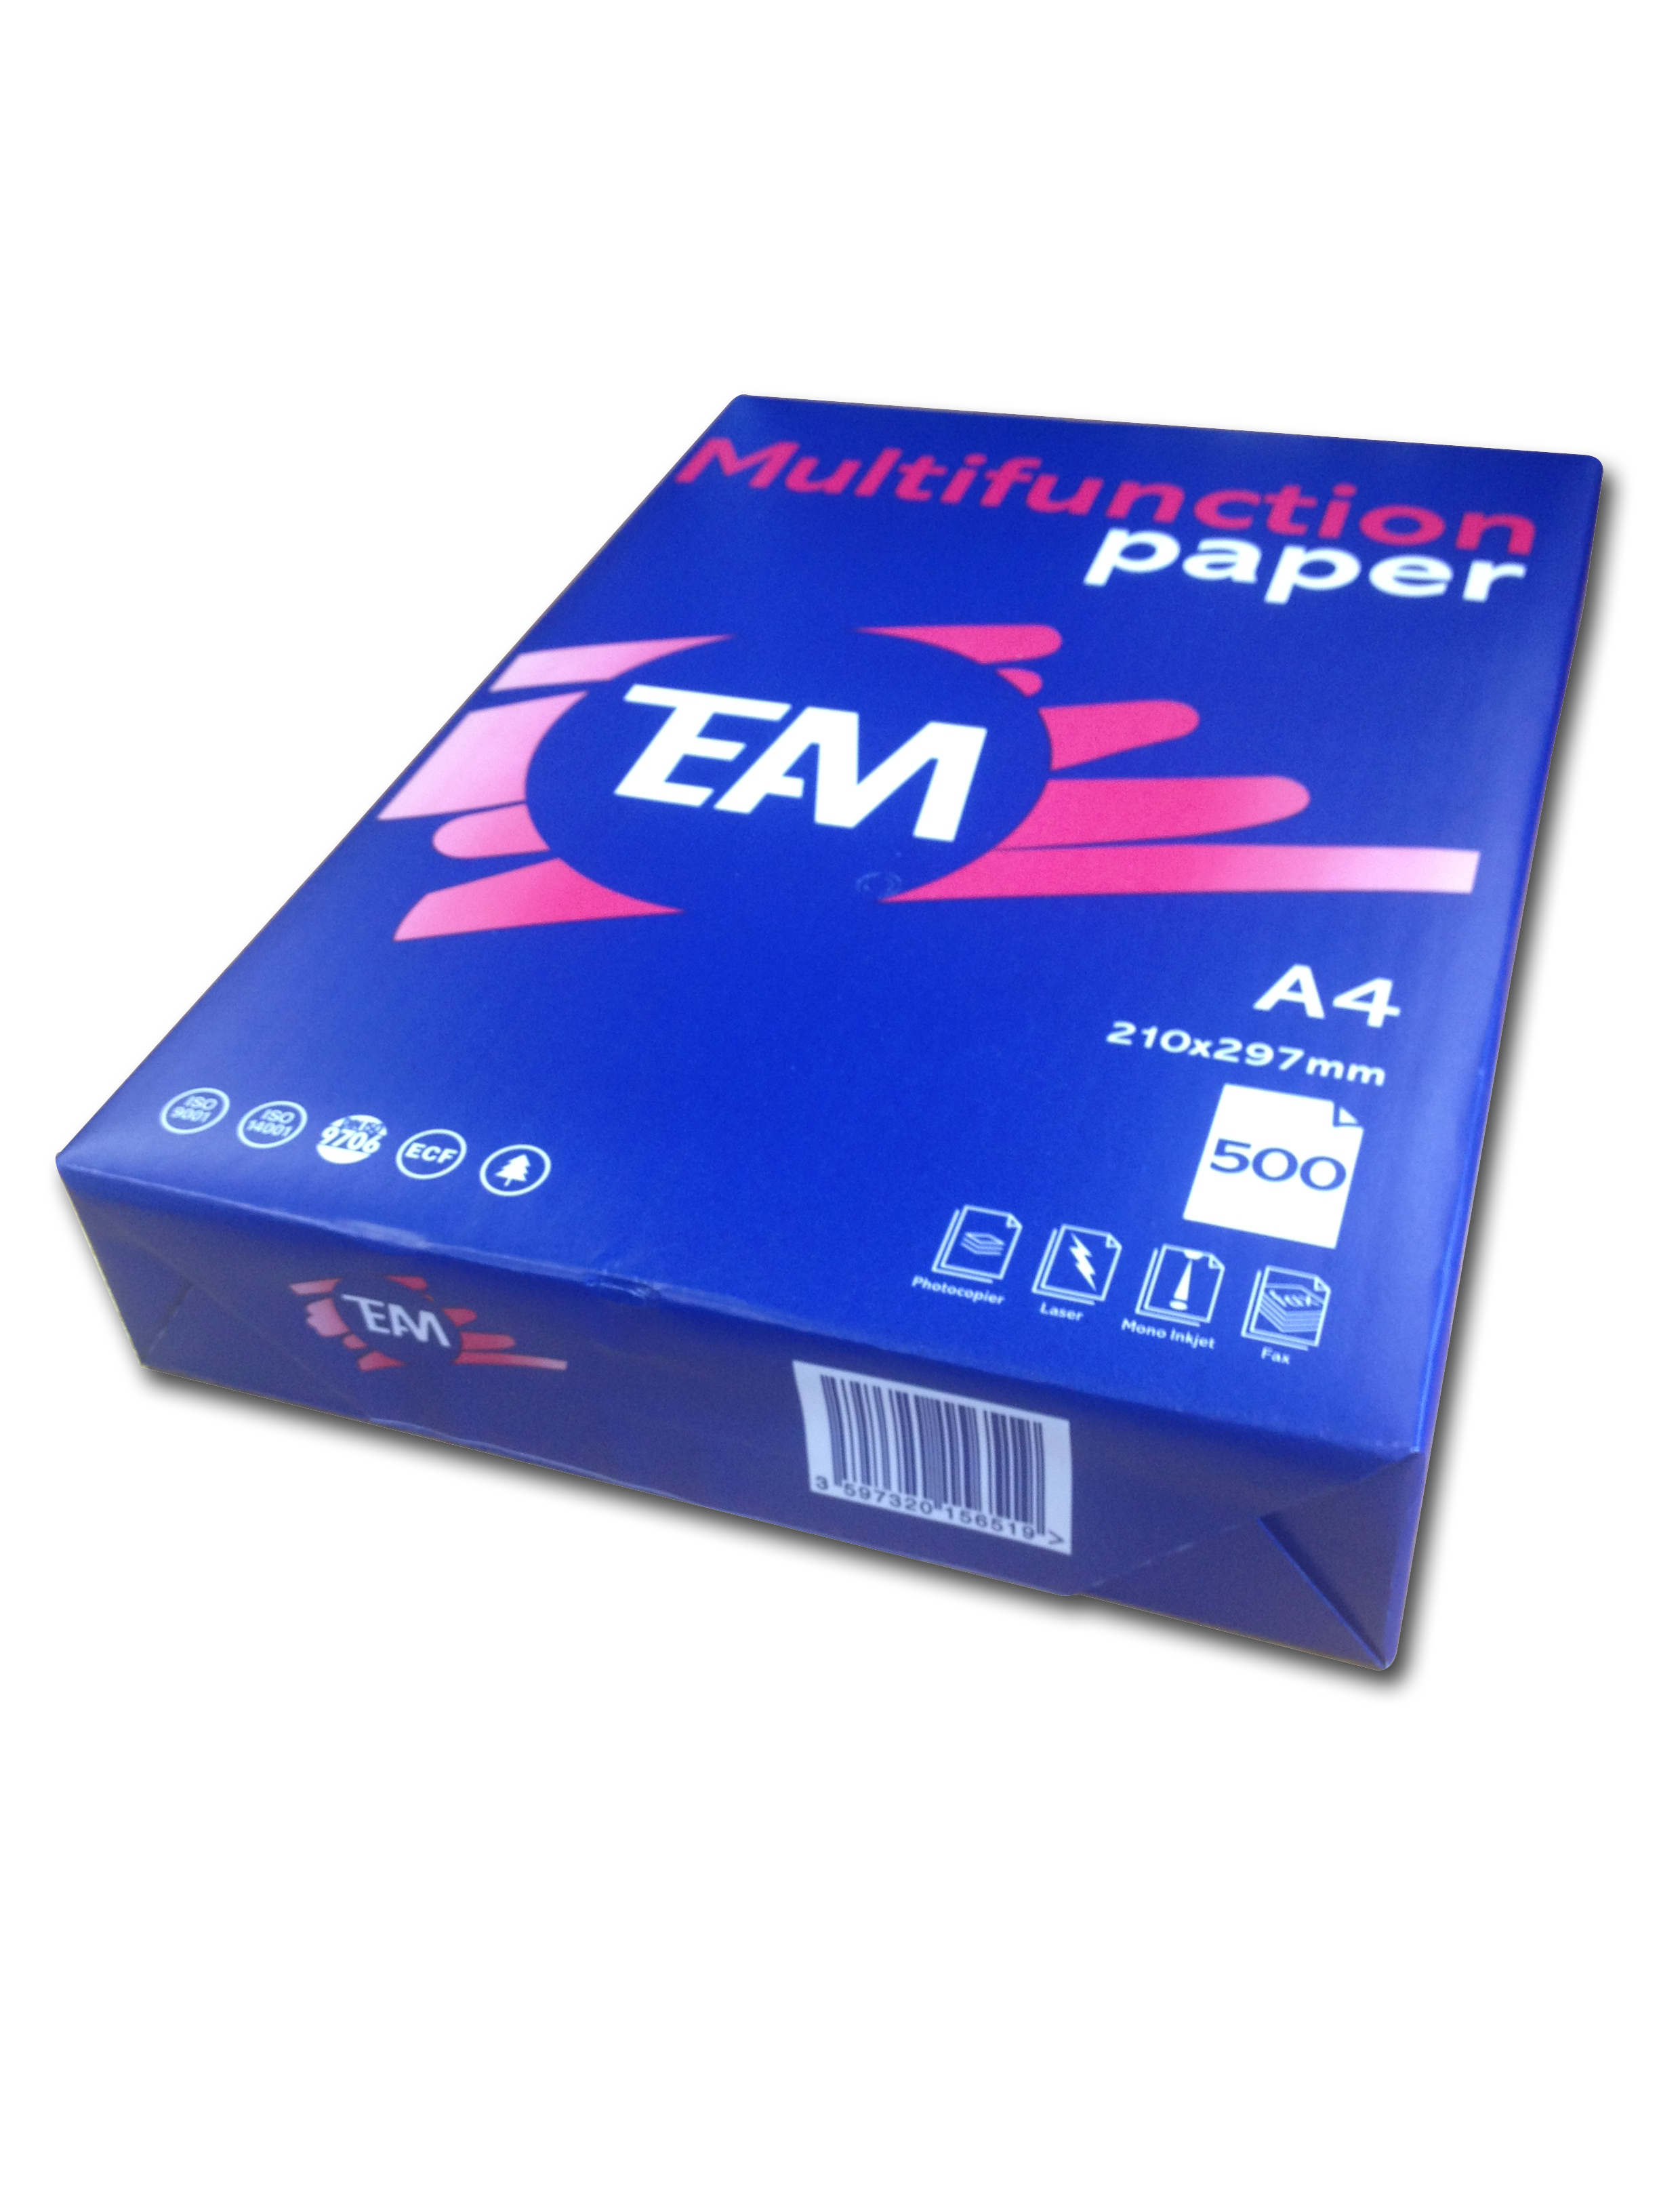 Team Economy Copier Paper A4 210x297mm Packed 500